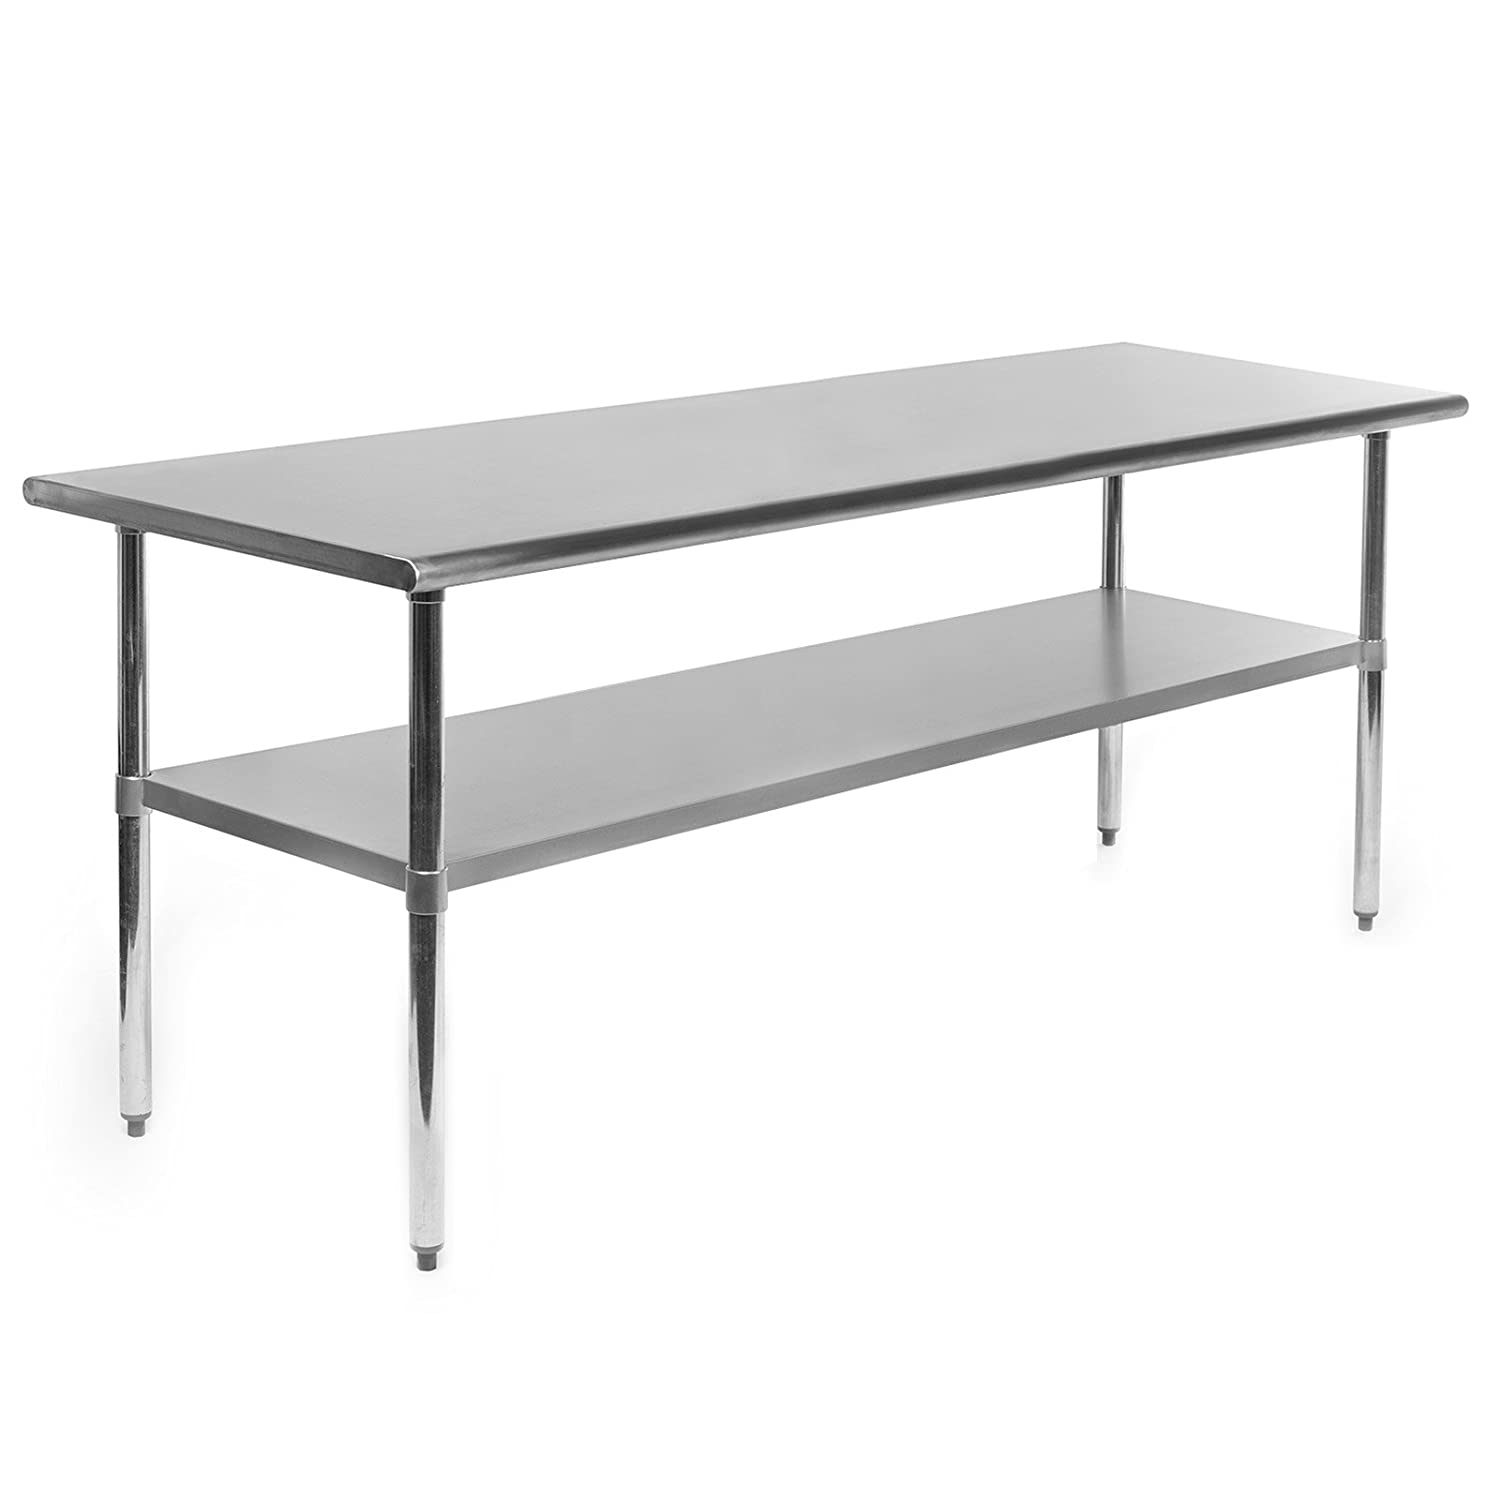 Kitchen work table - Gridmann Nsf Stainless Steel Commercial Kitchen Prep Work Table 60 In X 30 In